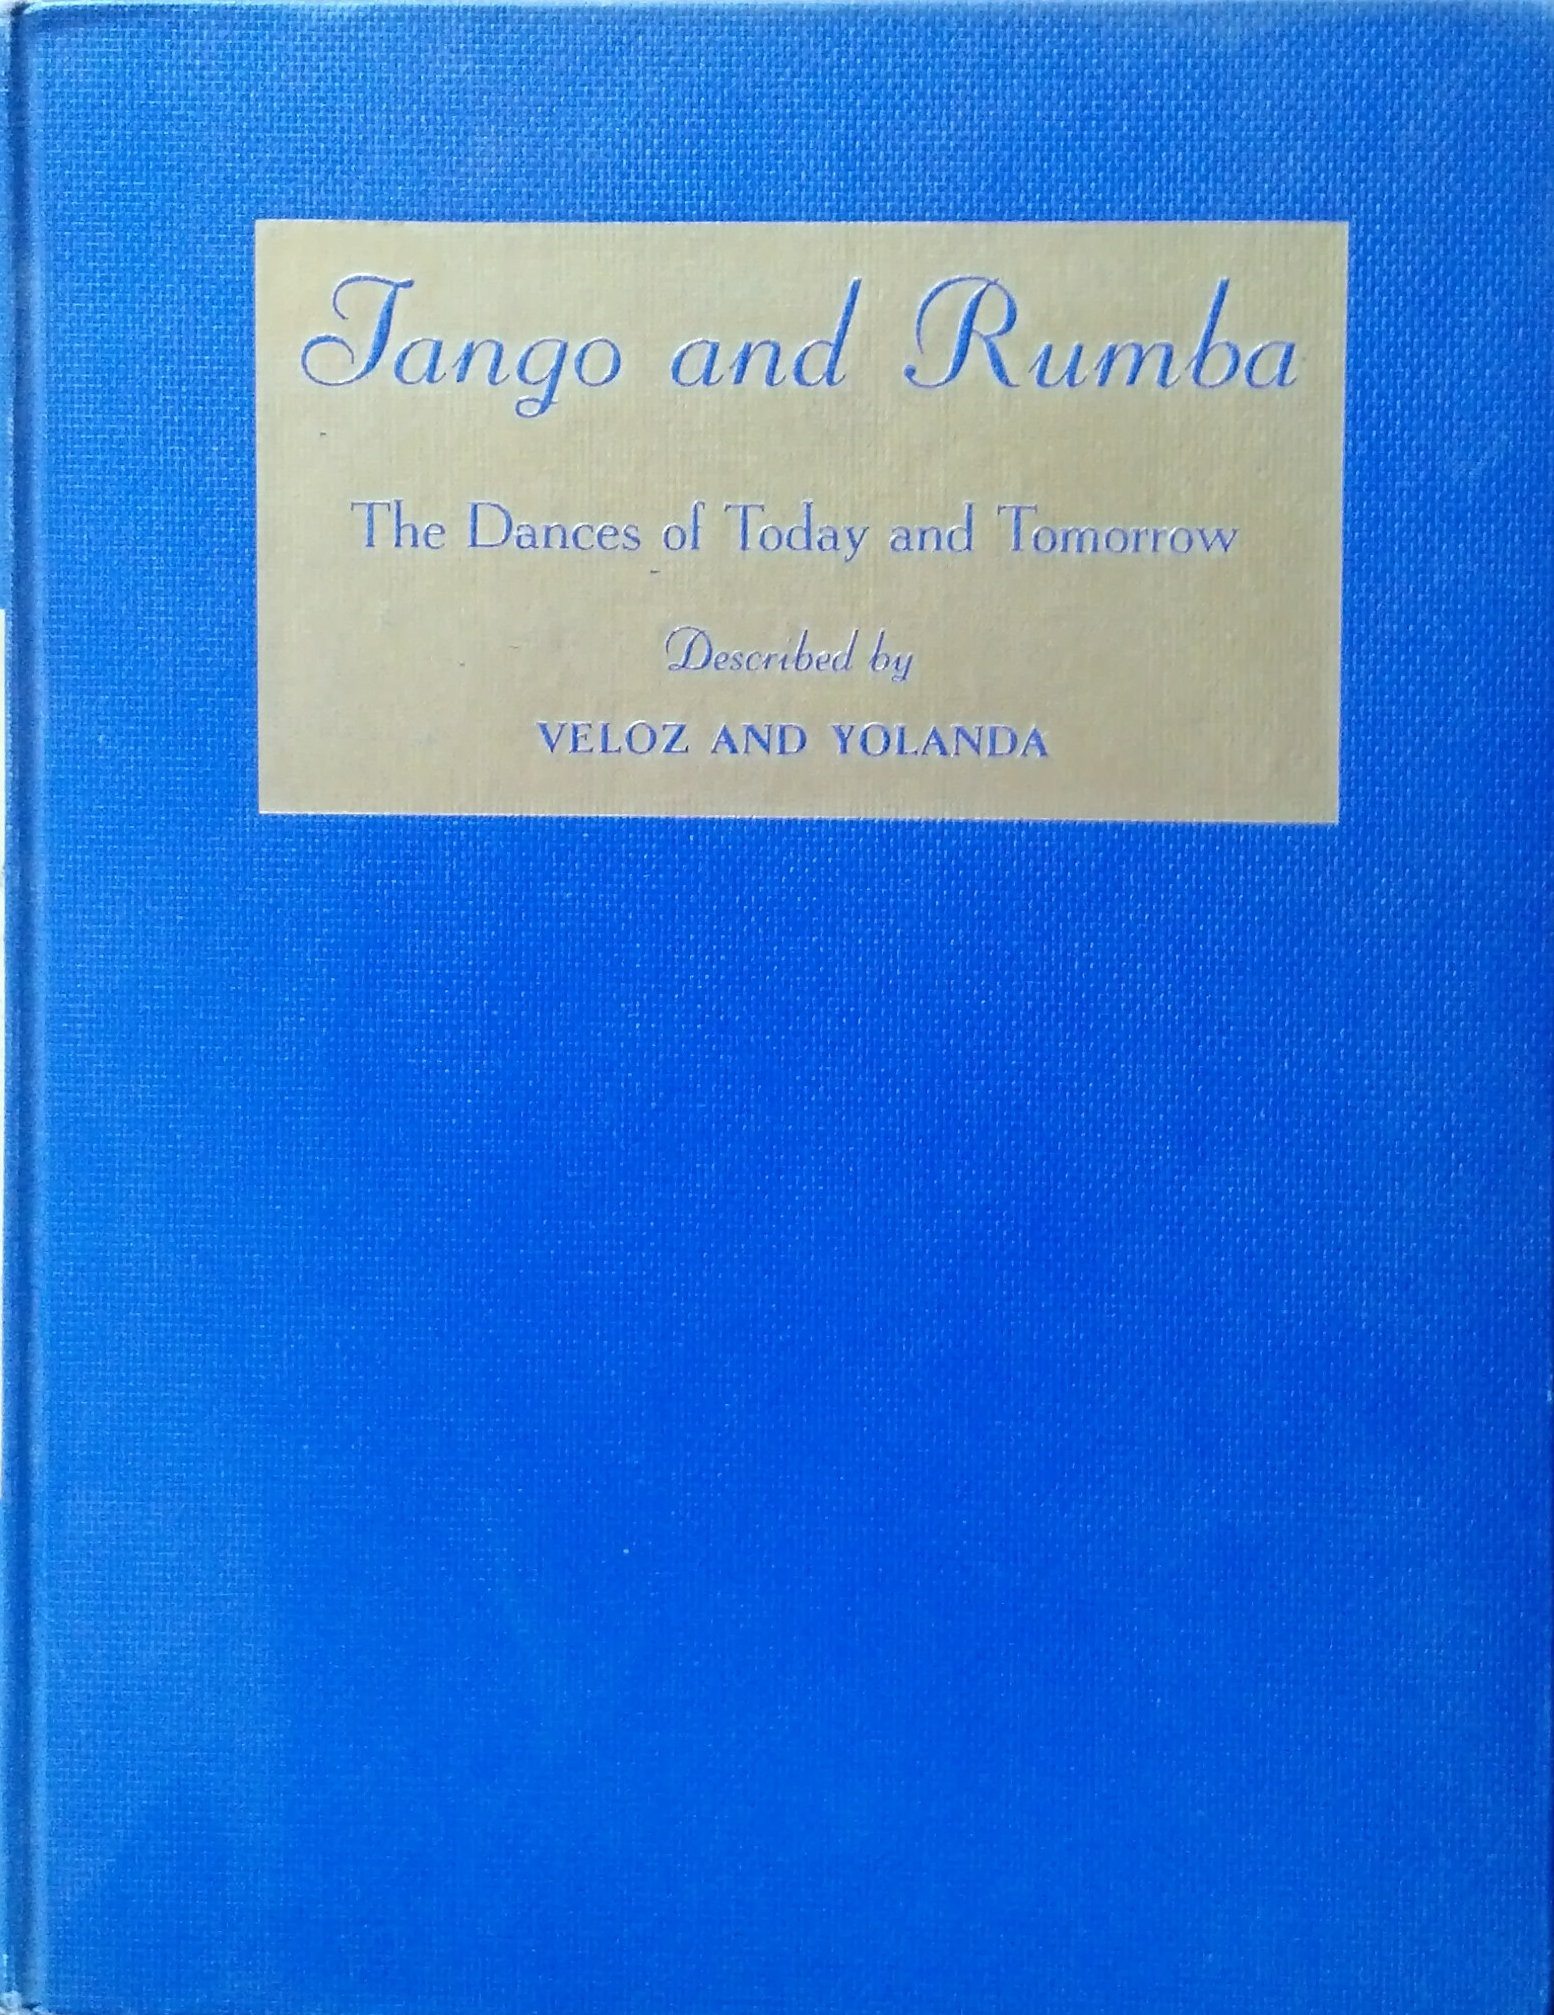 Tango and Rumba The Dances of Today and Tomorrow